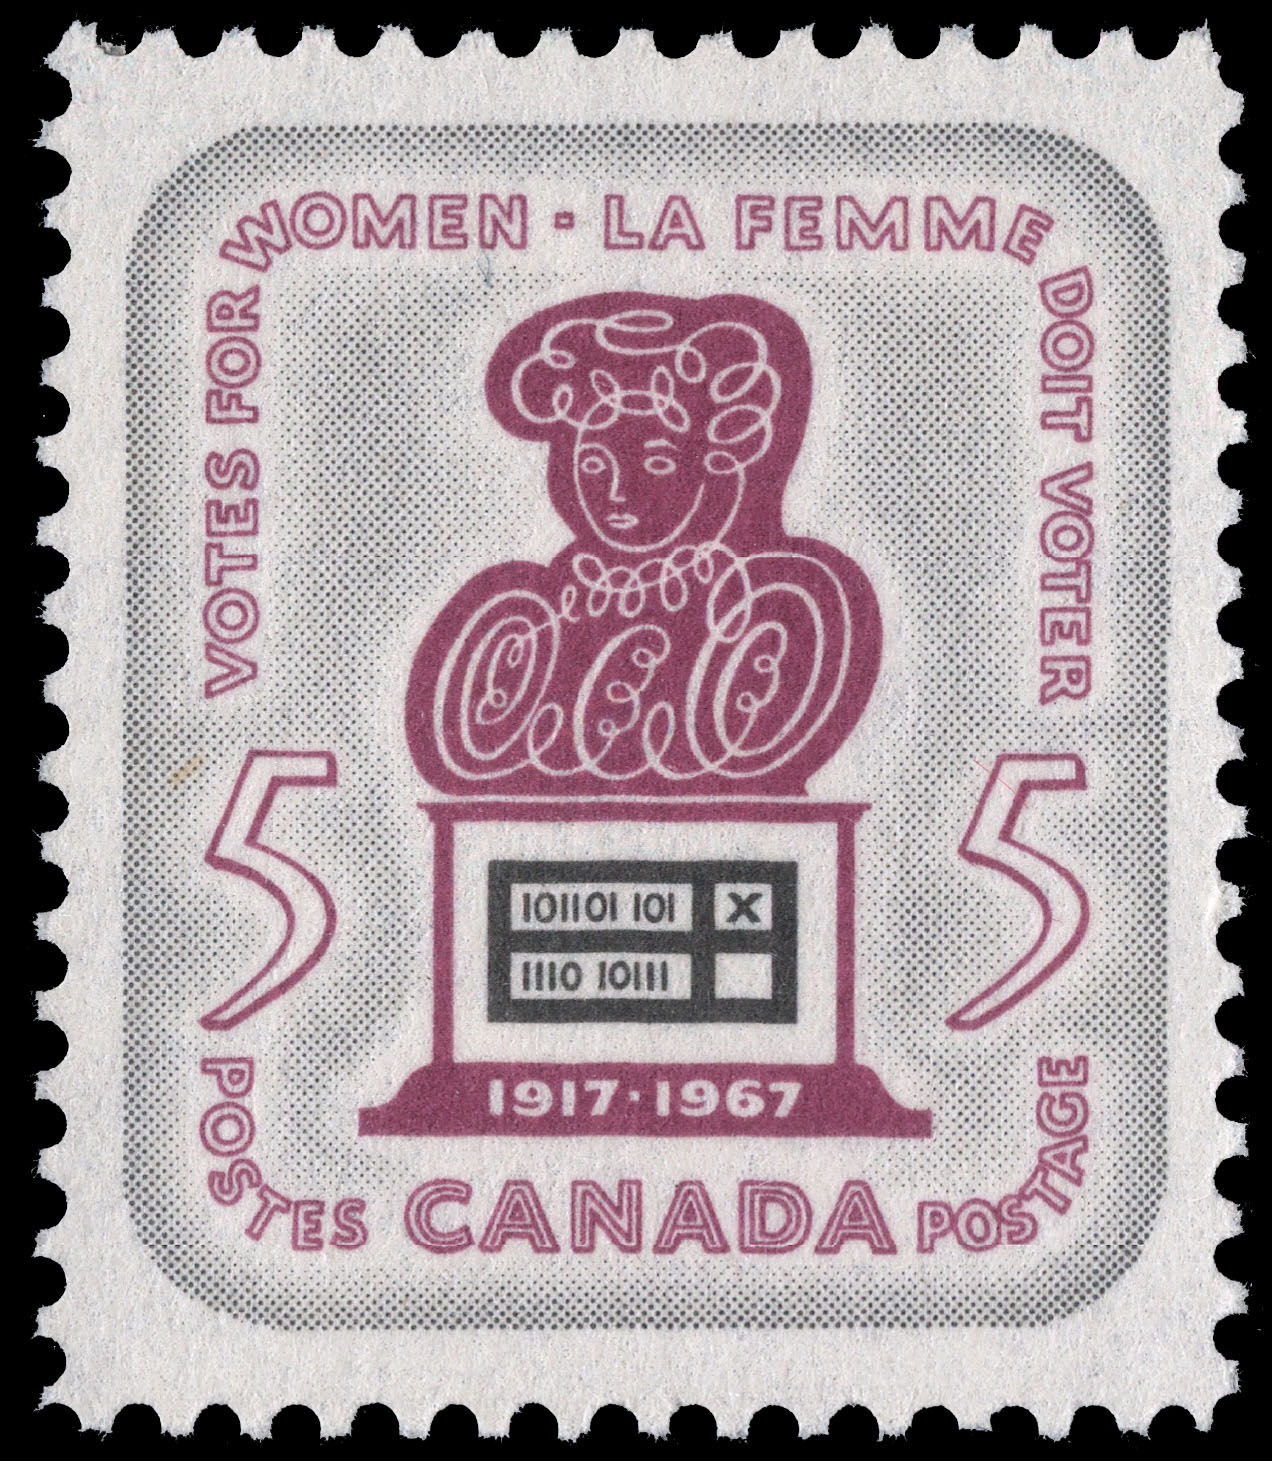 Votes for Women, 1917-1967 Canada Postage Stamp